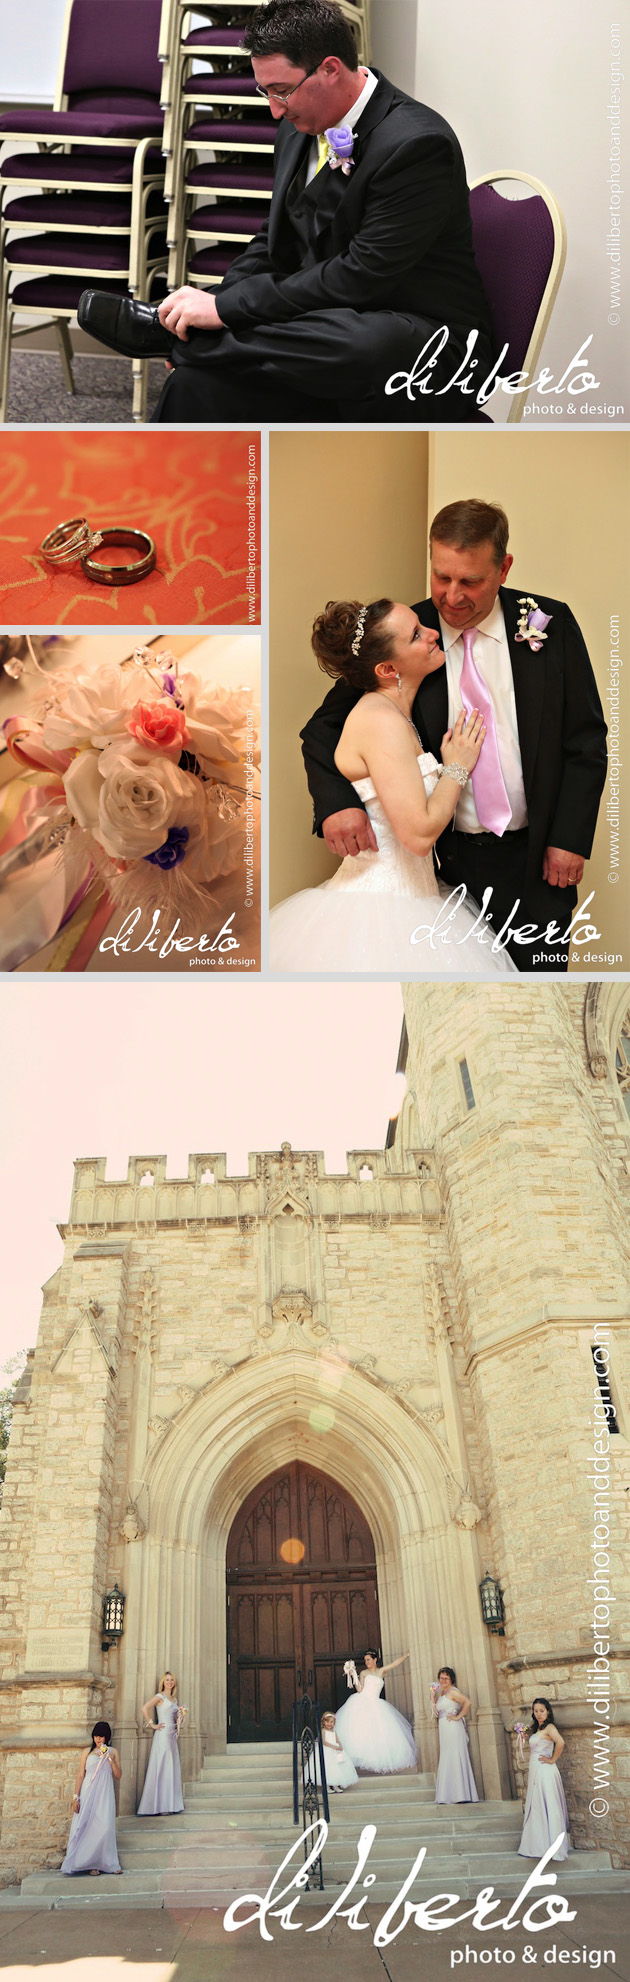 Wedding Photography Tulsa oklahoma